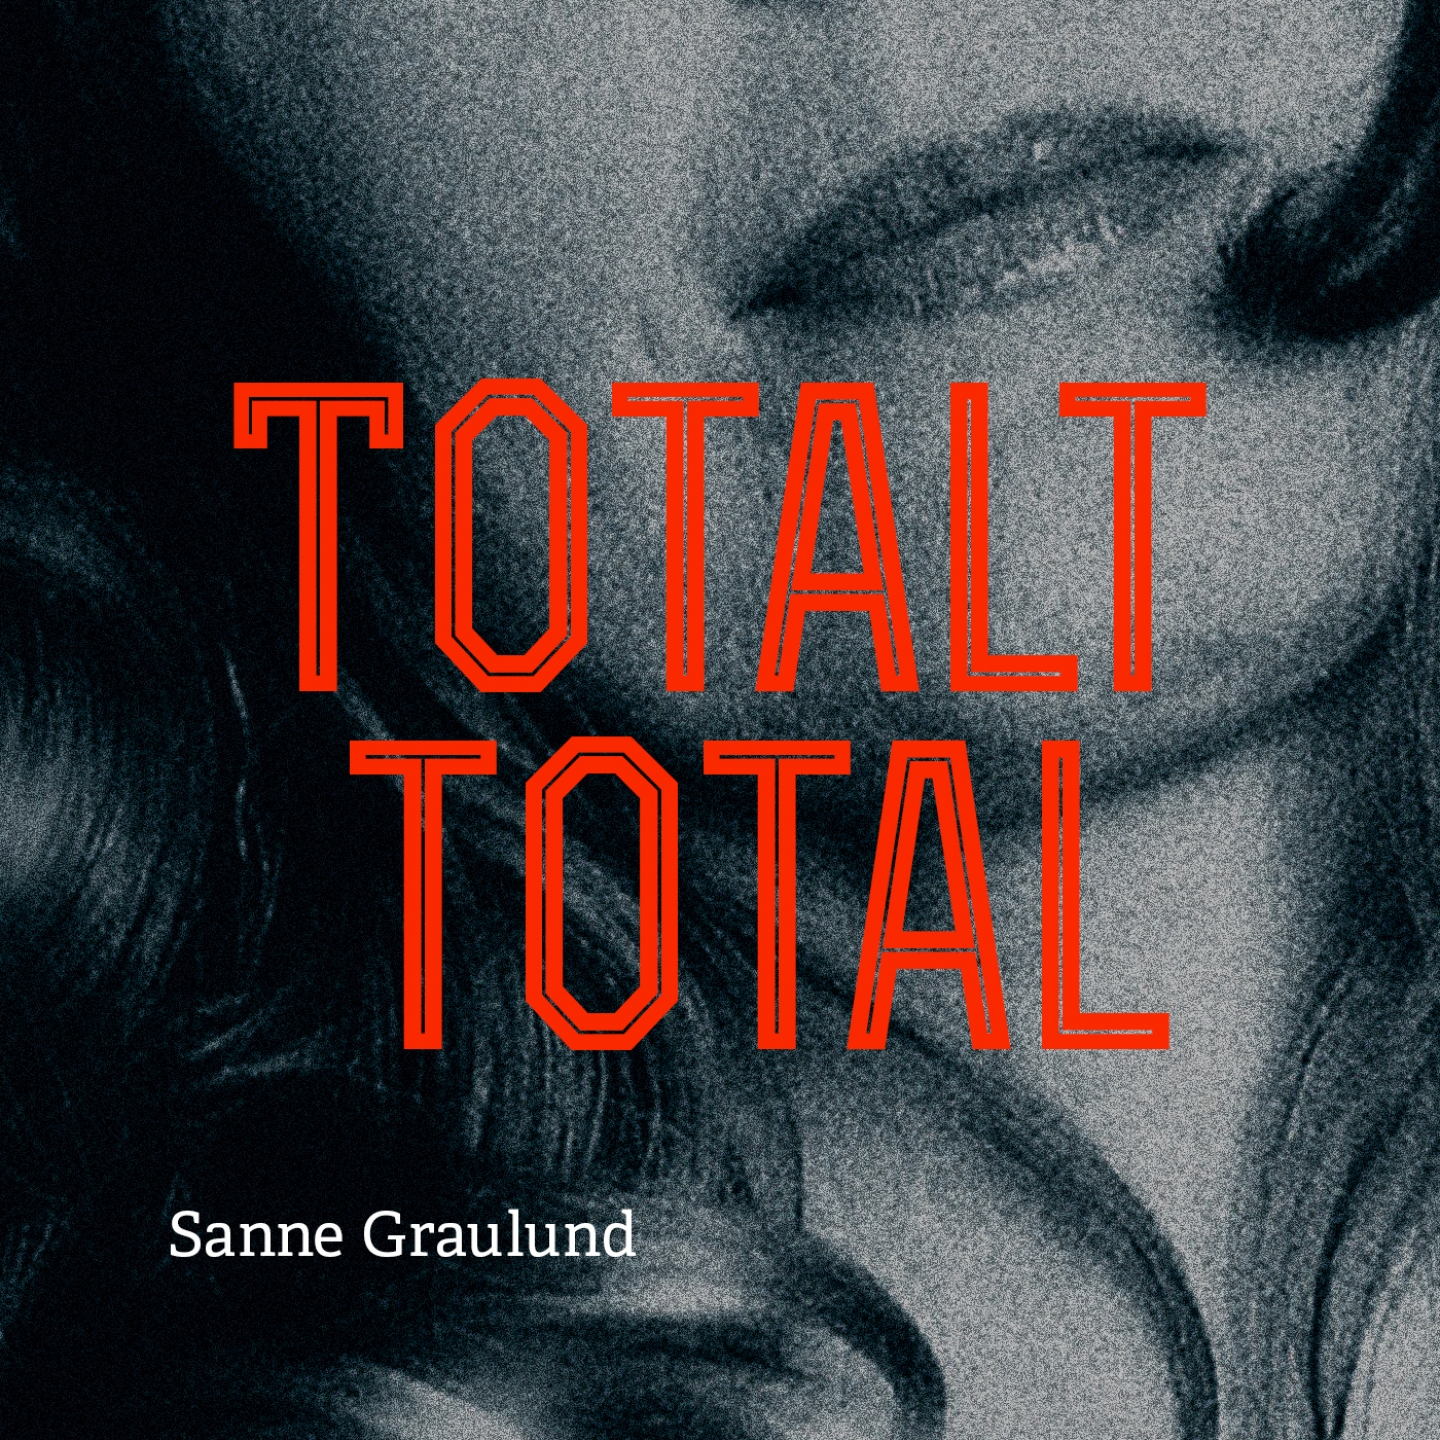 Sanne Graulund – 'Totalt Total' (Single)